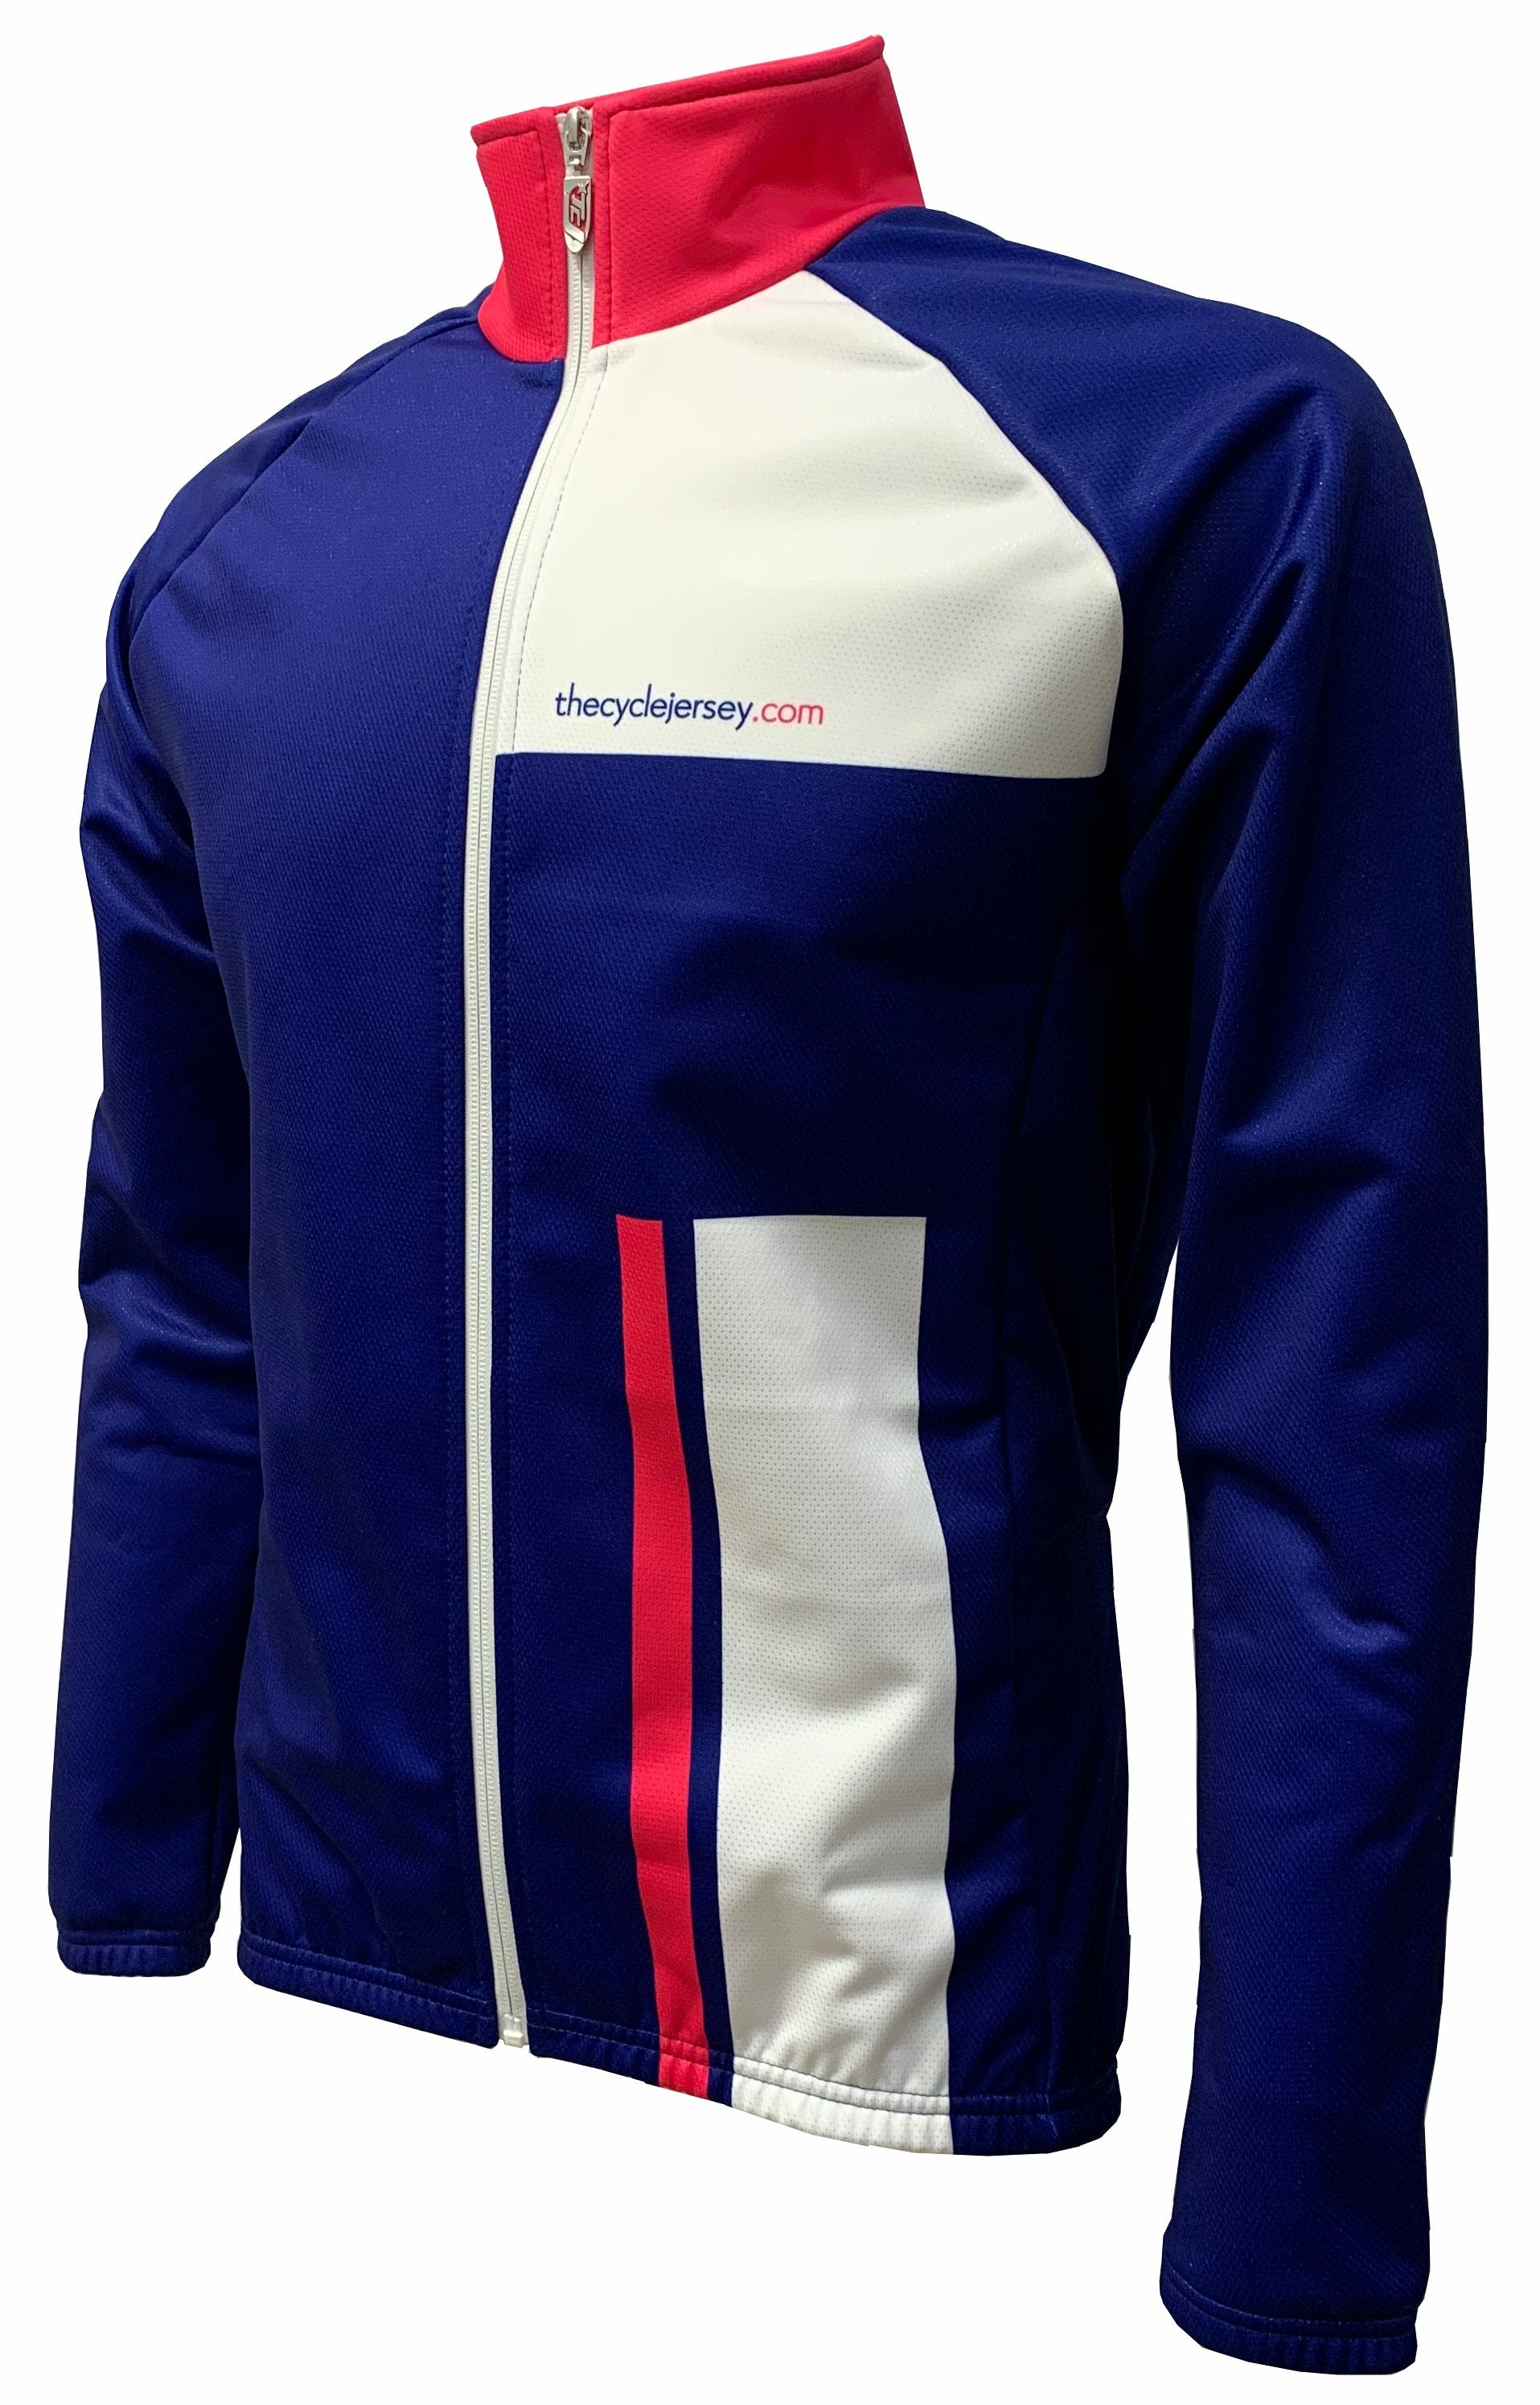 Modern Windcheeta Cycling Jacket Front